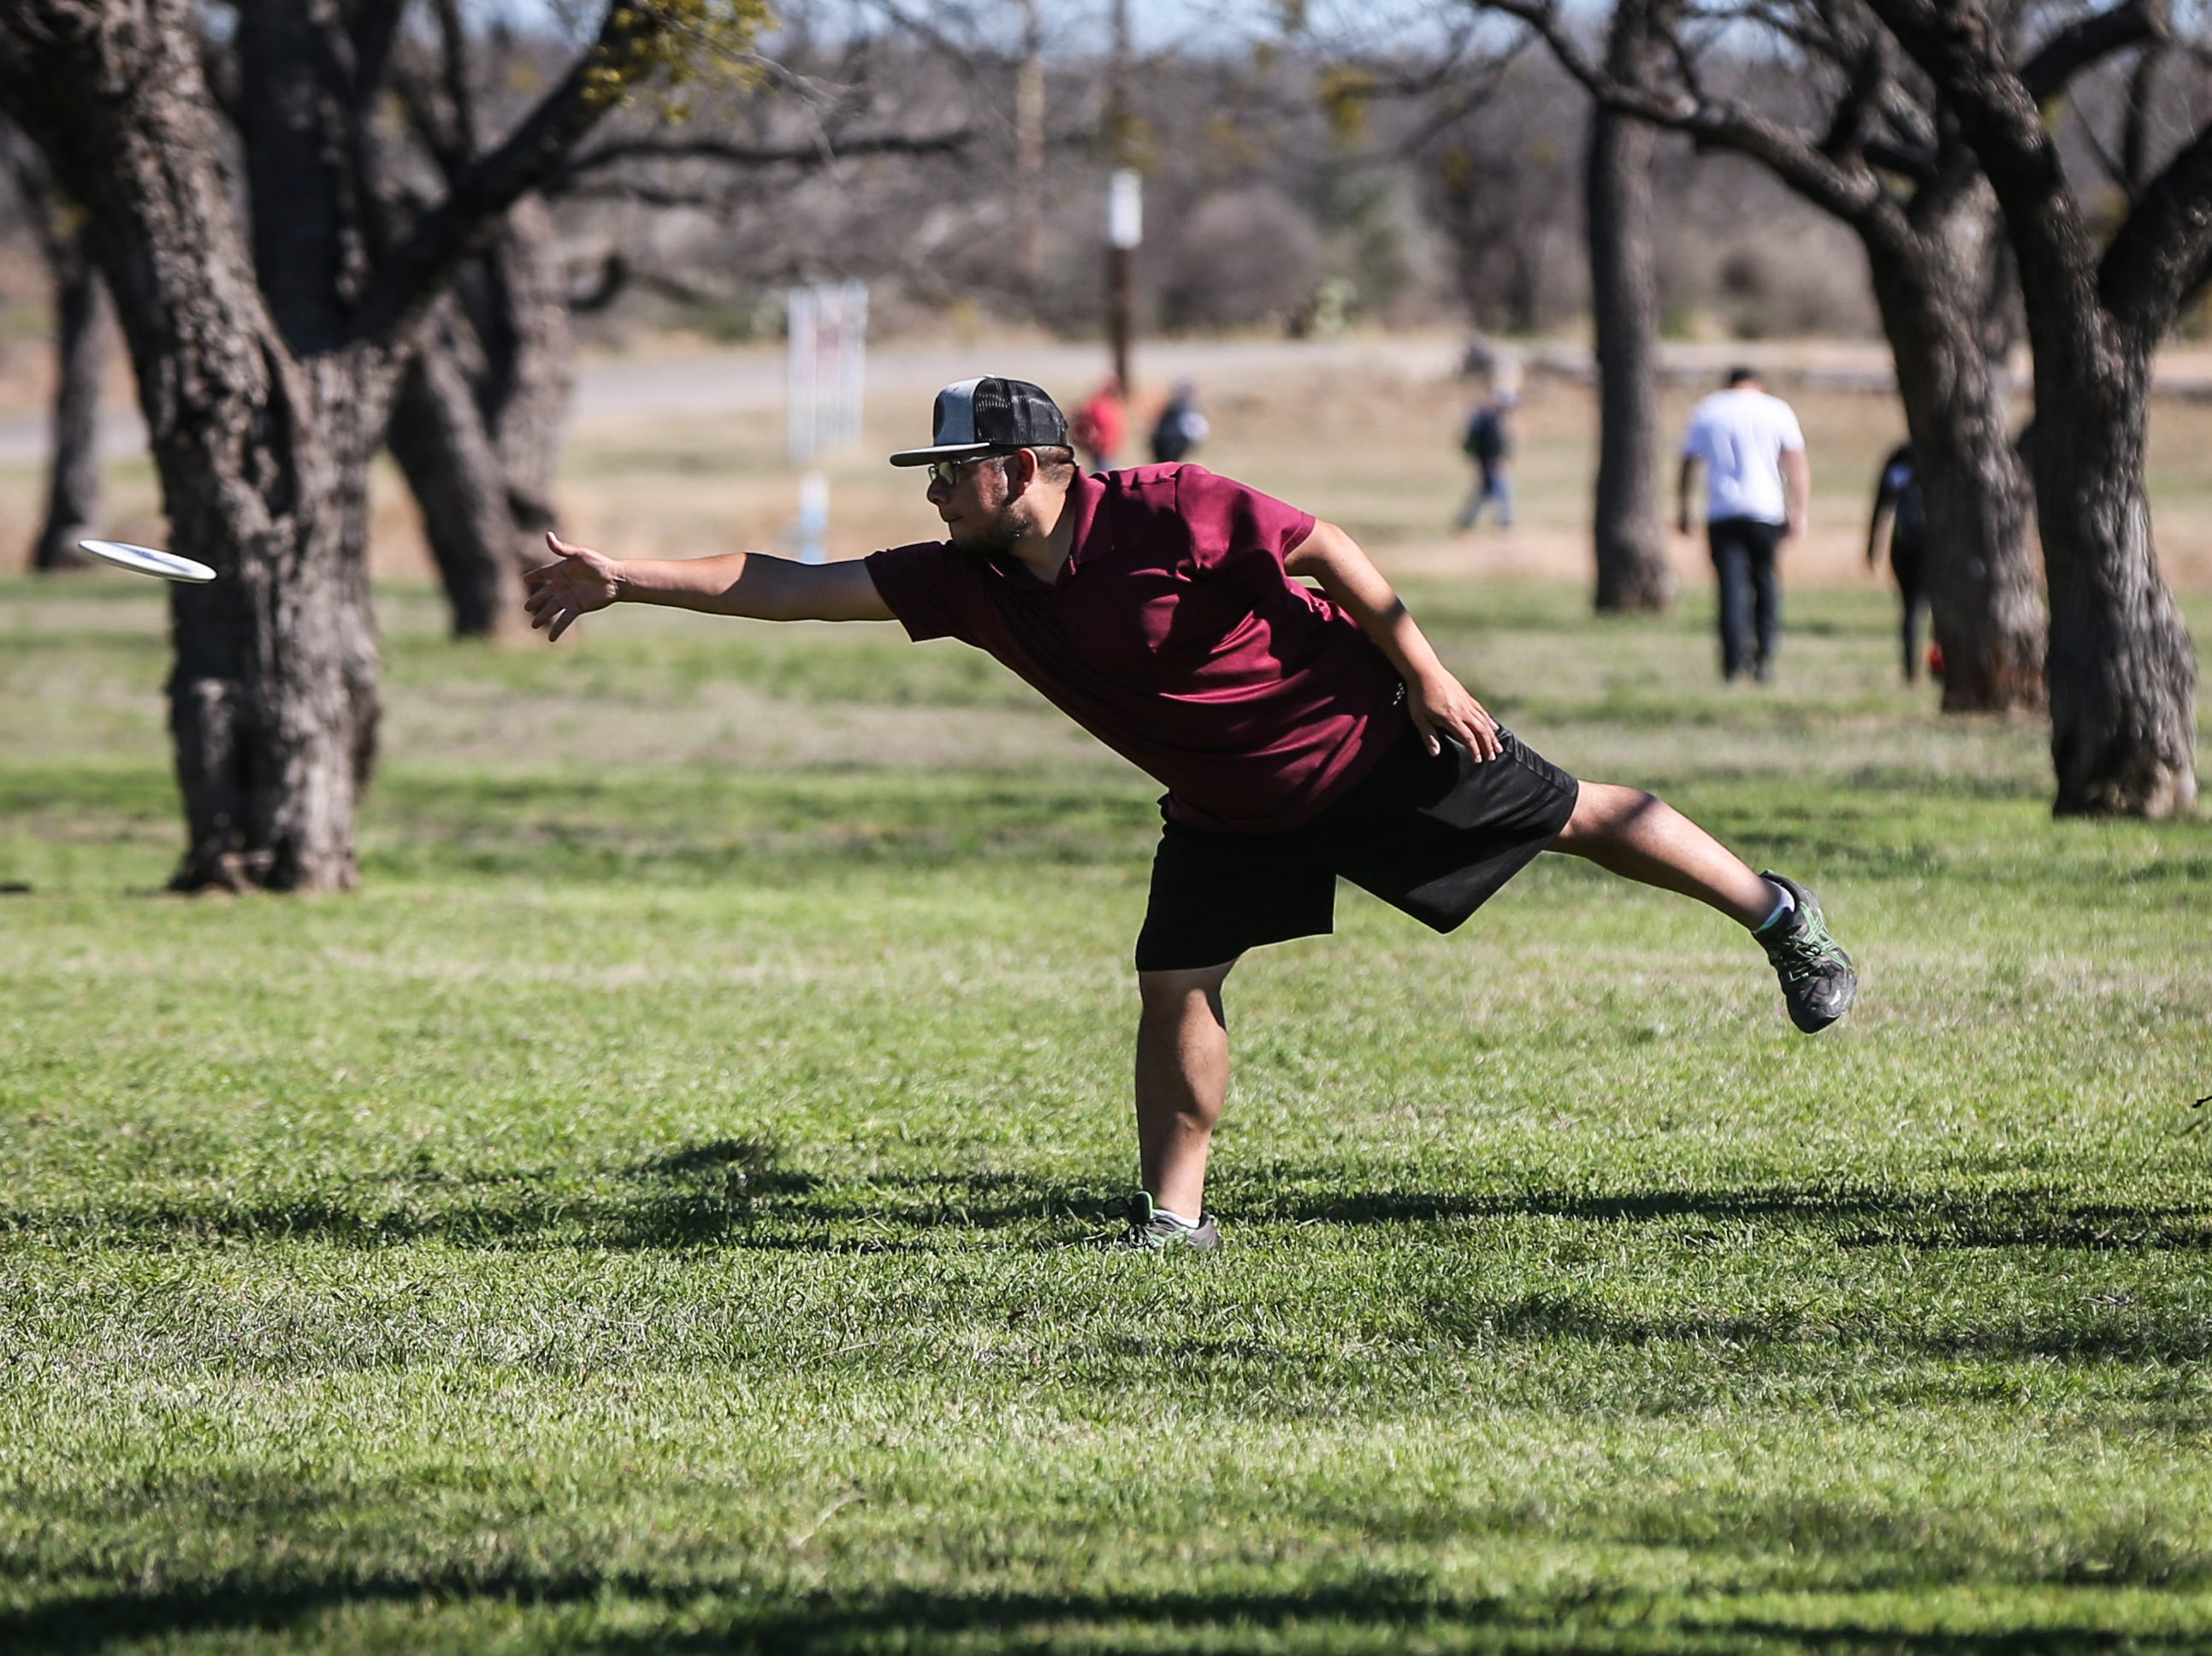 Eric DeLeon Roy Martin throws a disc during the Crush on the Concho tournament Saturday, March 9, 2019, at Middle Concho Park.